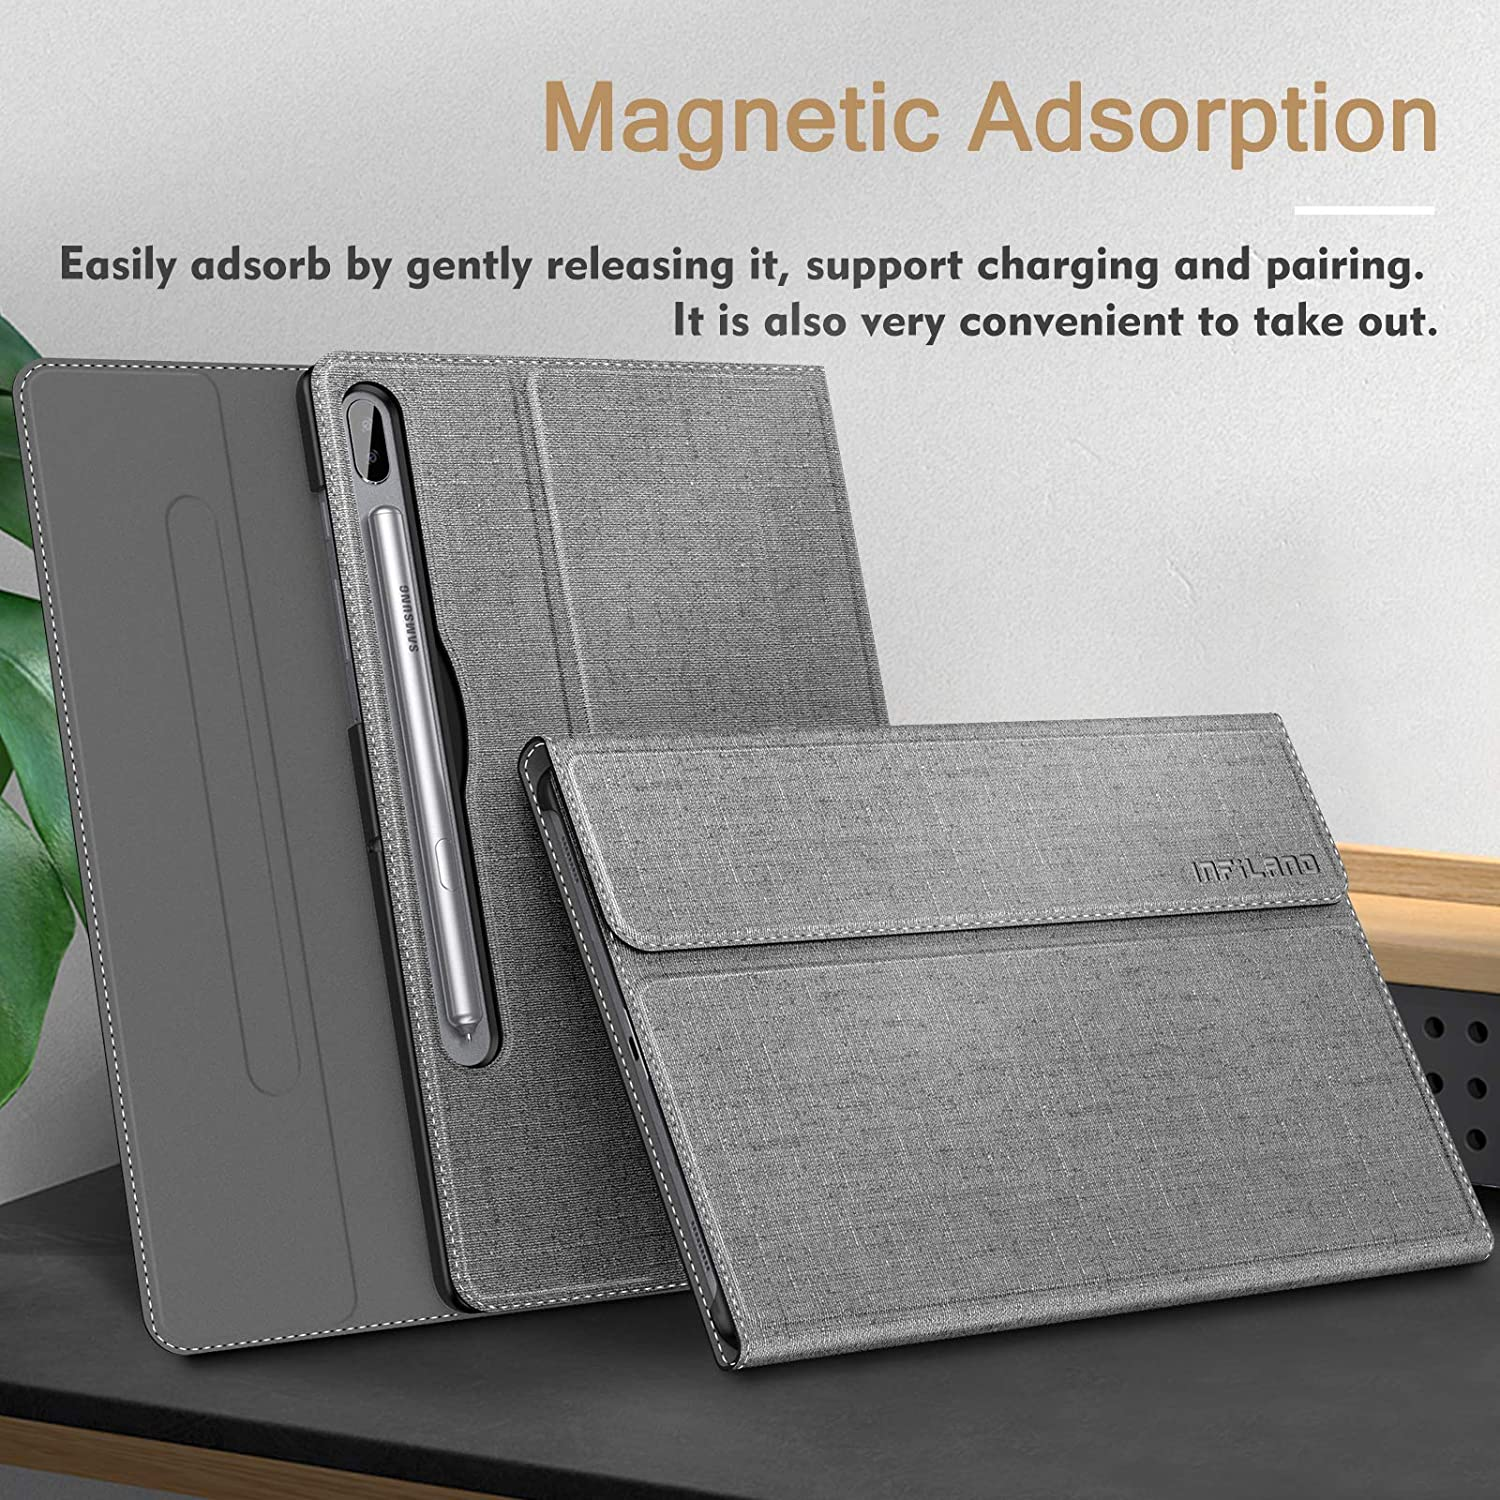 Multiple Angle Stand Case Fit Samsung Galaxy Tab S6 10.5 Inch Model SM-T860//T865//T867 2019 Release Auto Wake//Sleep Infiland Galaxy Tab S6 10.5 Case Gray Support S Pen Wirelss Charging